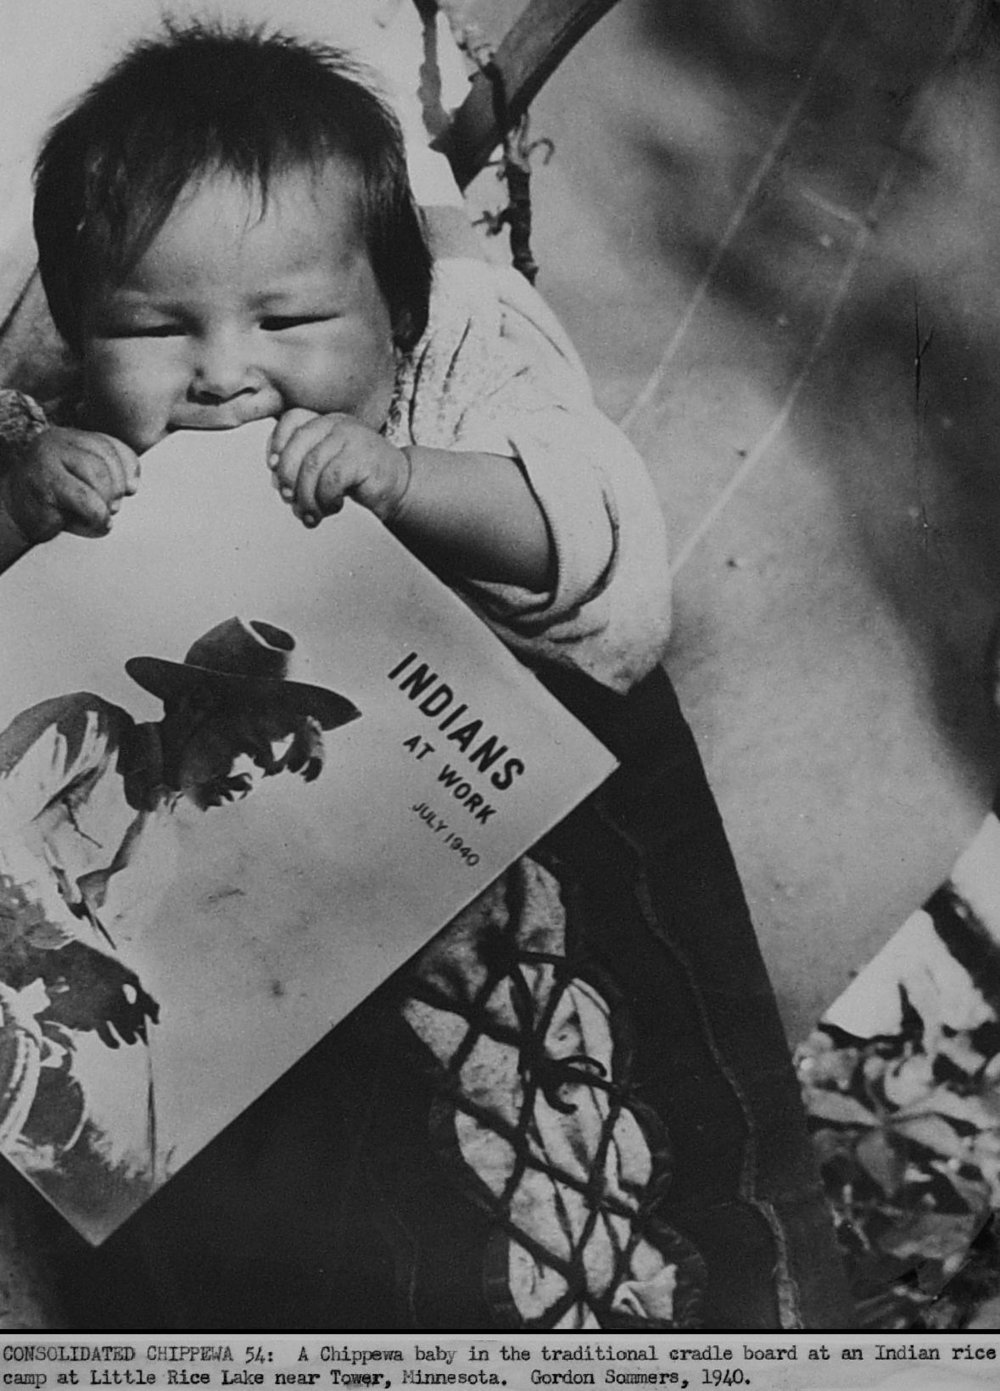 113 1940_govt_photo_minnesota_farming_scene_chippewa_baby_teething_on_magazine_indians_at_work.jpg